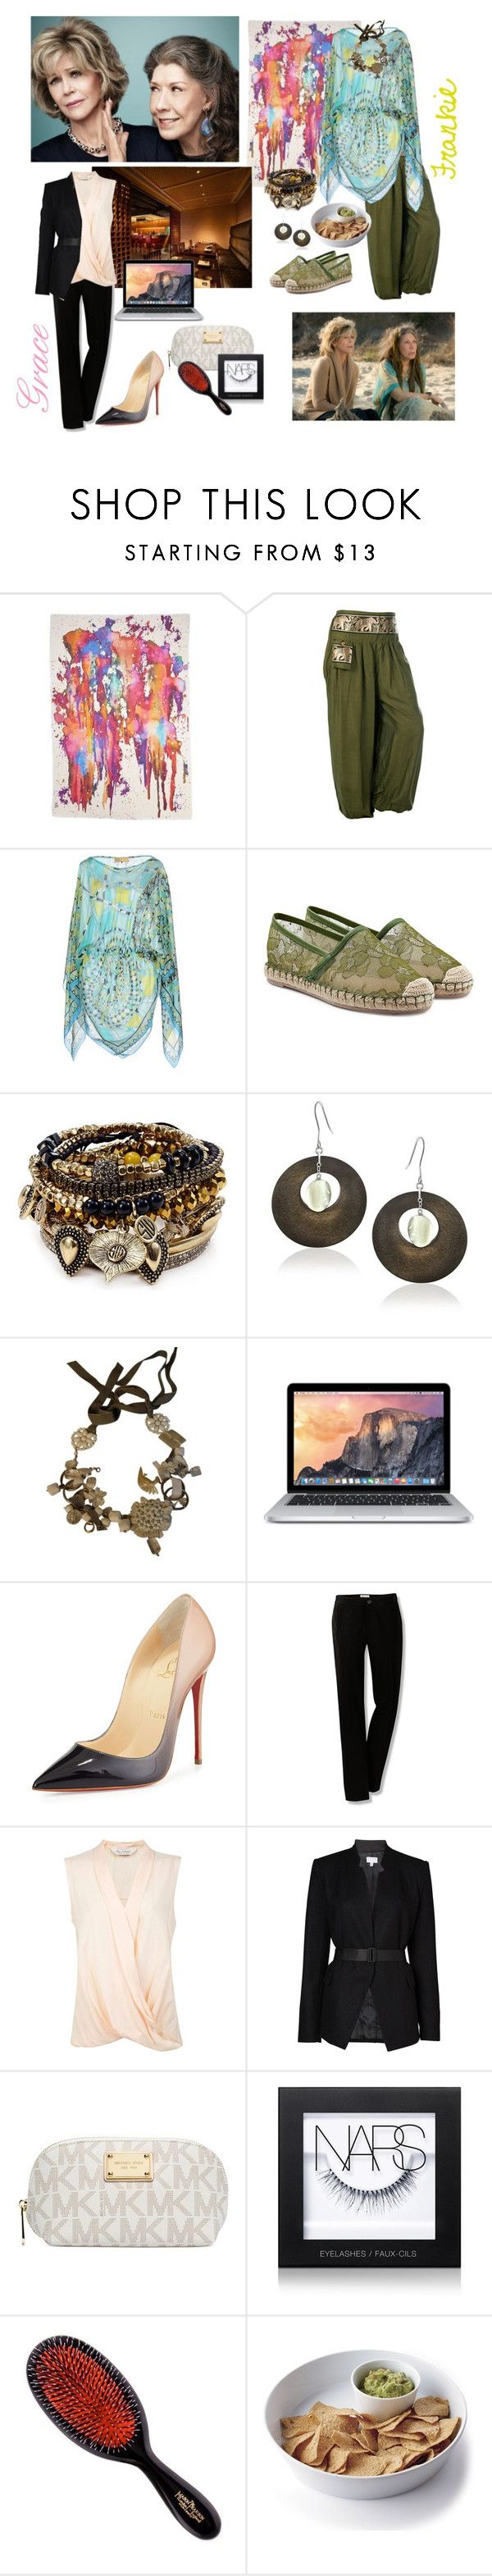 Grace and Frankie Inspired. Jane Fonda & Lily Tomlin. Netflix Series by x-laurynx on Polyvore featuring Emilio Pucci, Miss Selfridge, Witchery, Christian Louboutin, Valentino, Samantha Wills, MaxMara, Lord & Taylor, Franco Ferrari and NARS Cosmetics